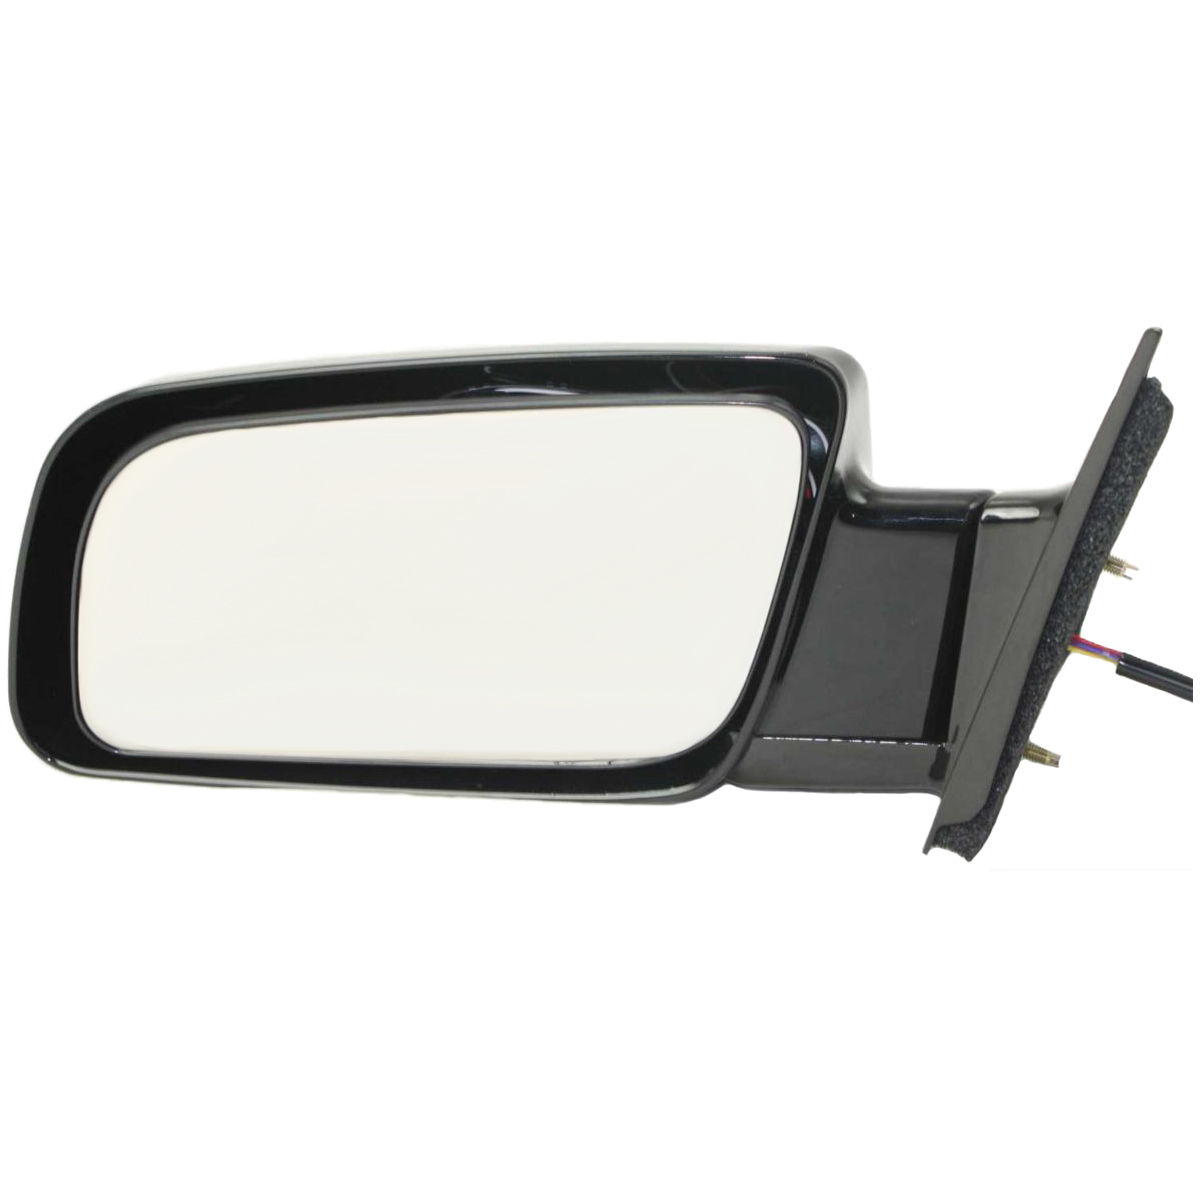 """NEW 5/"""" ROUND CLAMP ON SPOT MIRROR BLACK SIDE VIEW DOOR GLASS LENS UNIVERSAL FIT"""